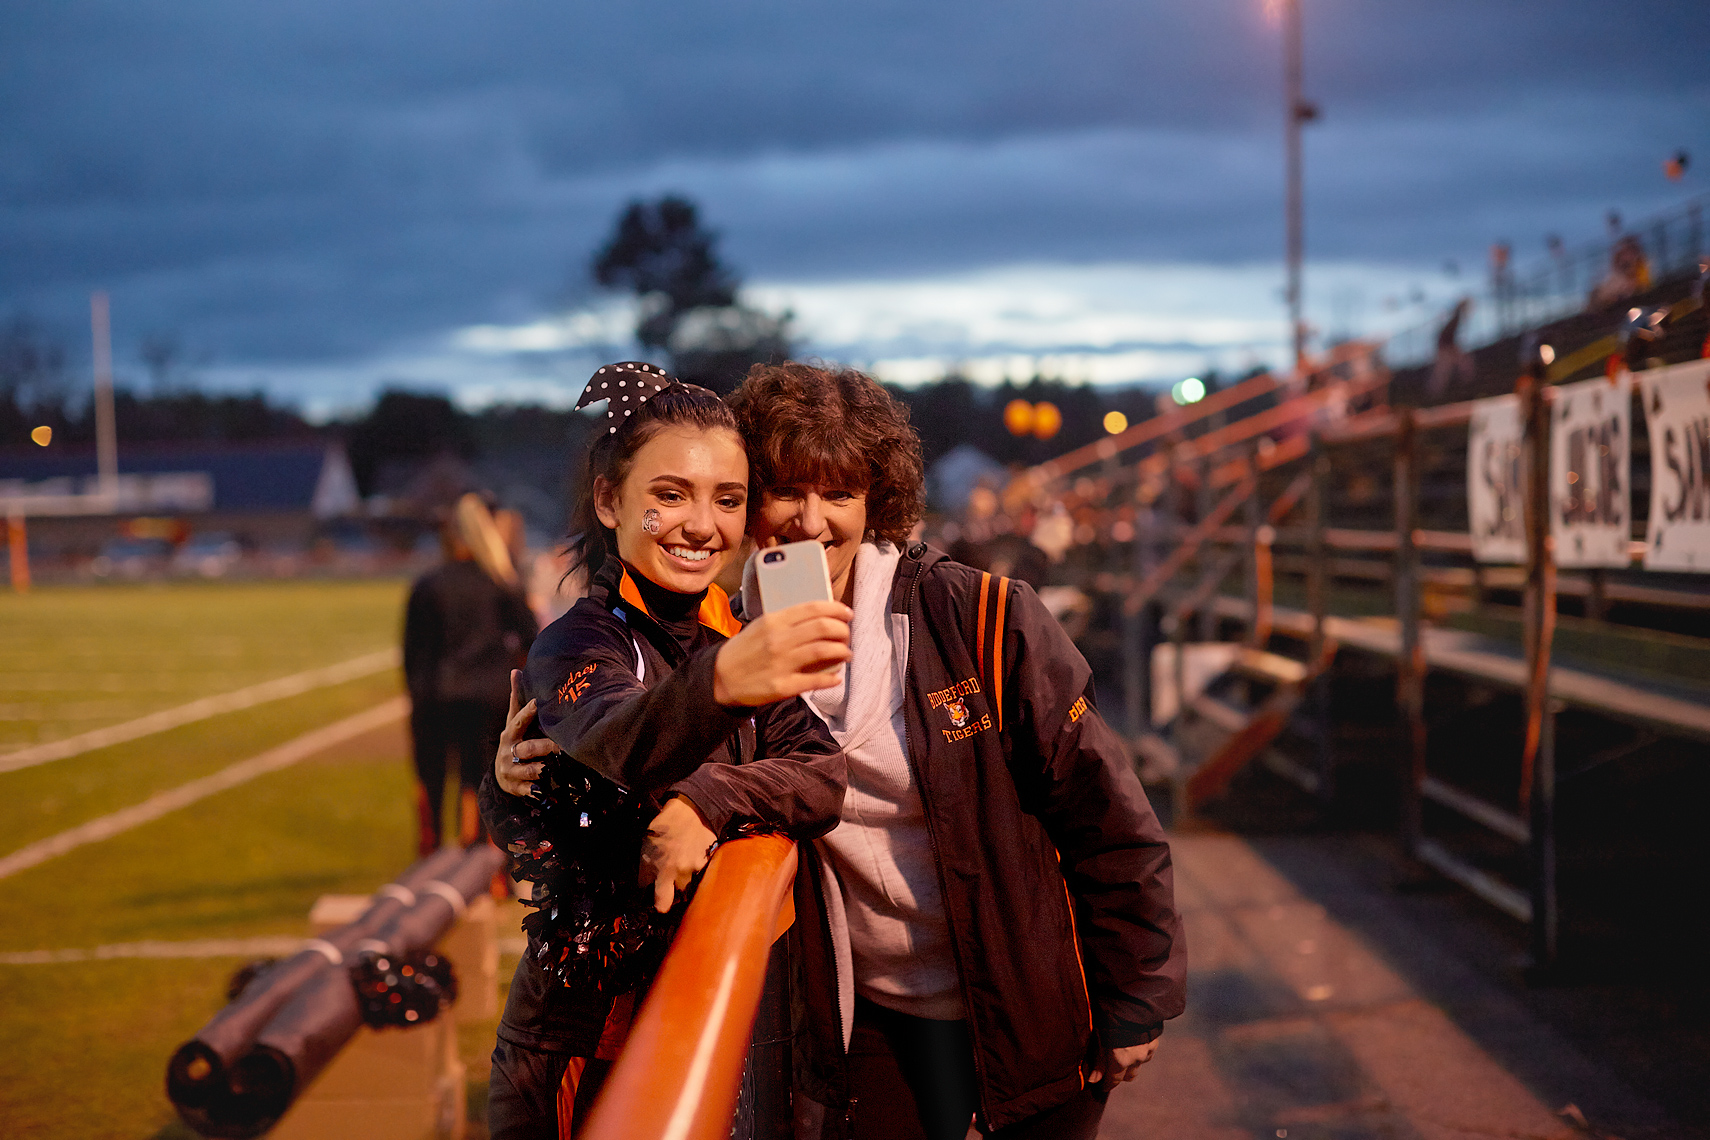 141022-DownEast-BattleOfTheBridge-GameDay-0222-fin-WebX